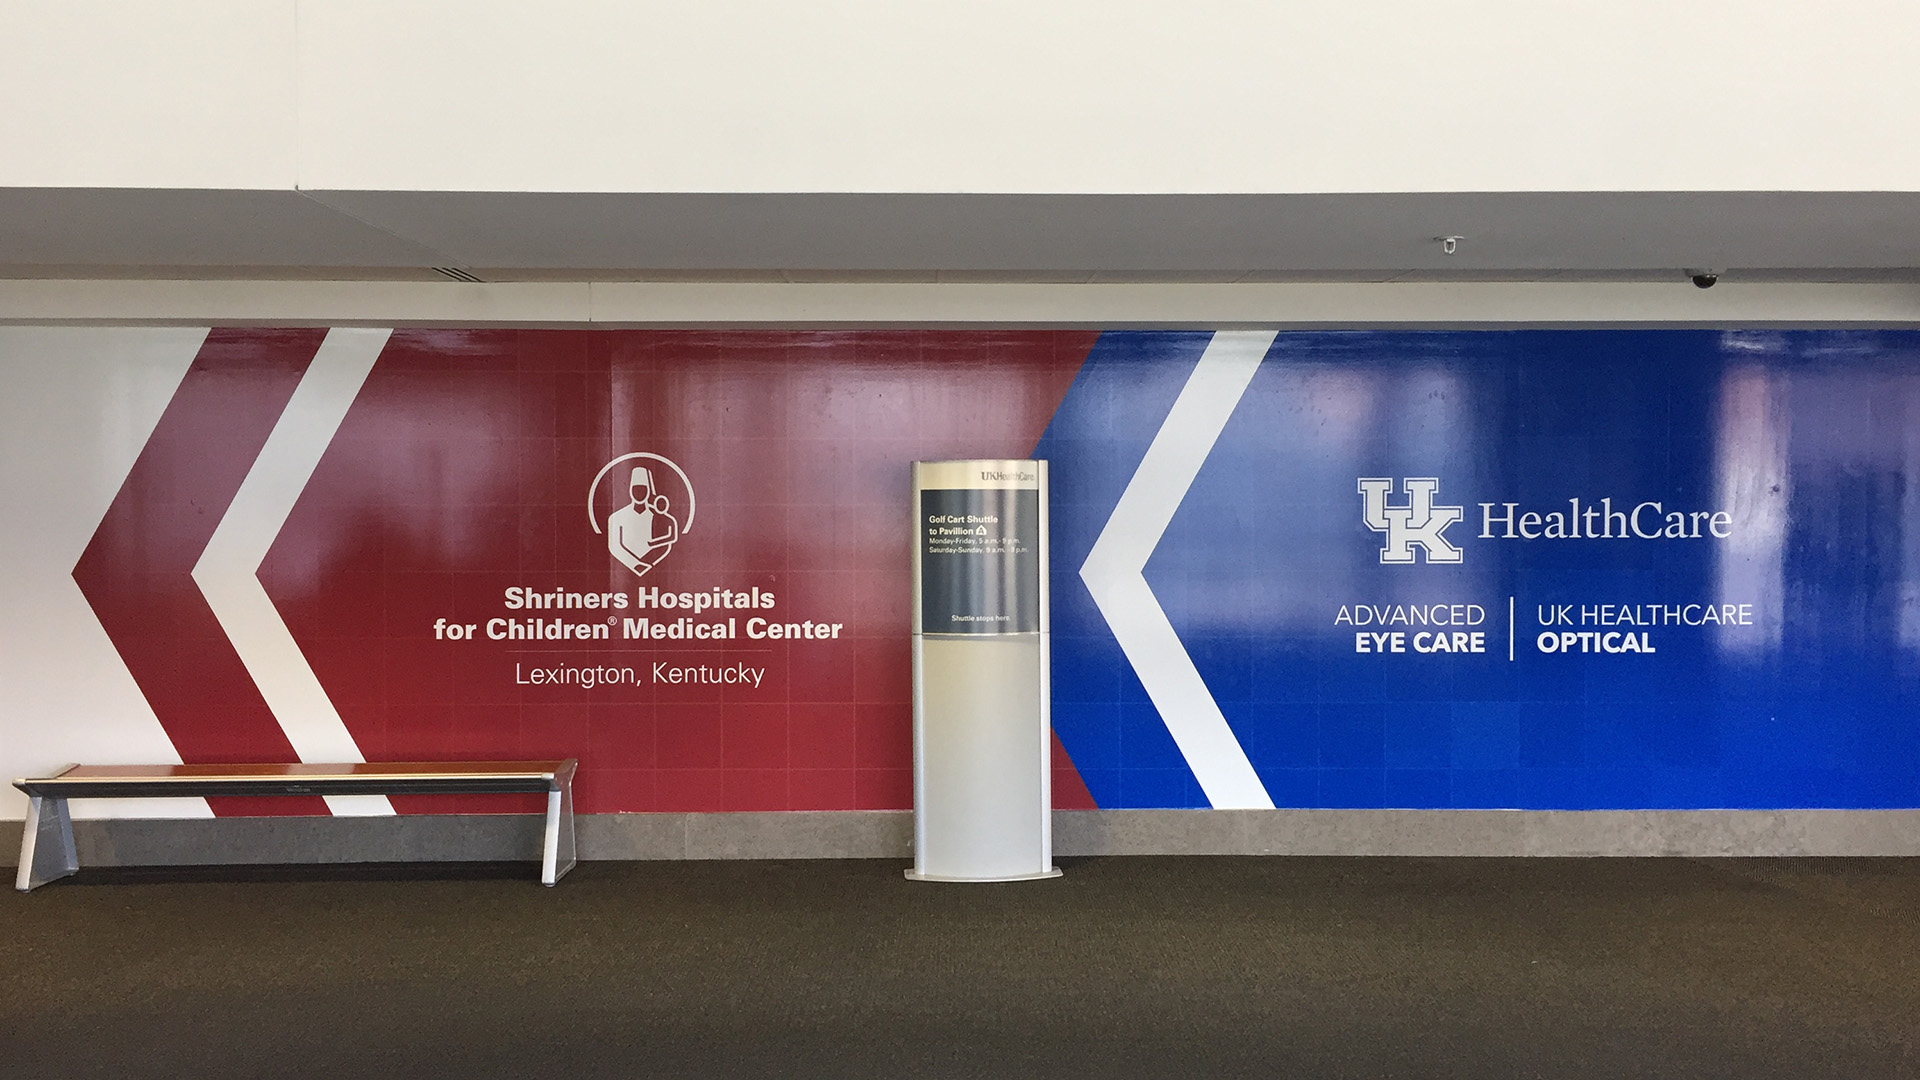 UK healthcare and Shriners Hospital Wall Graphic